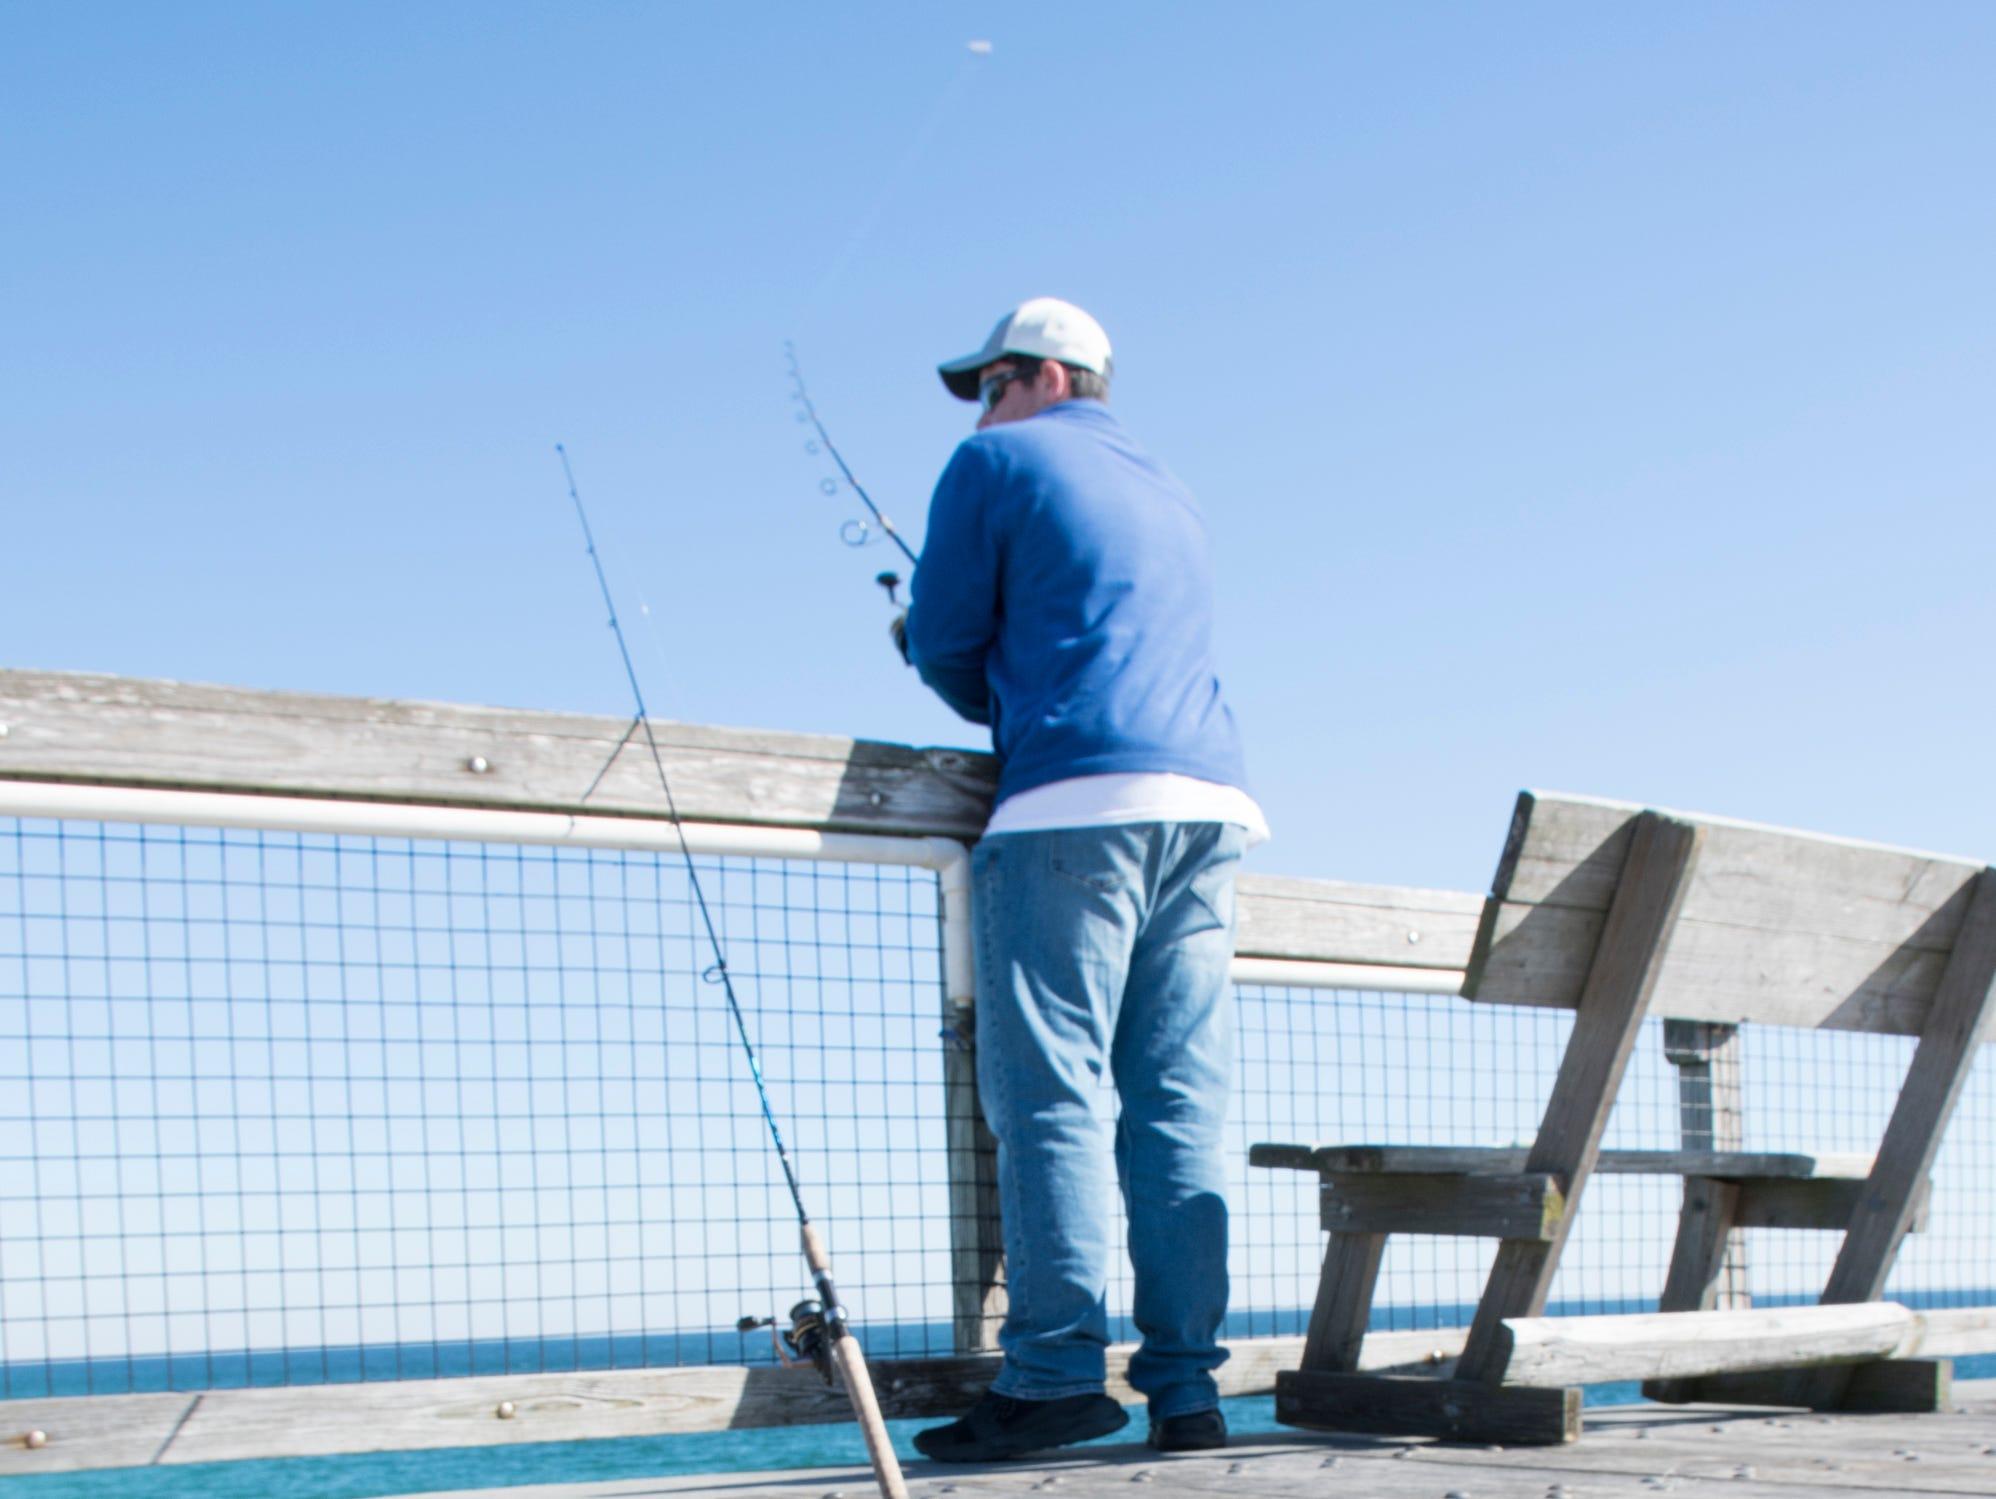 Regular angler Jonathon Cook, of Navarre, fishes from the pier in Navarre on Friday, January 11, 2019.  The pier is slated to get a major makeover this year complete with new decking material.